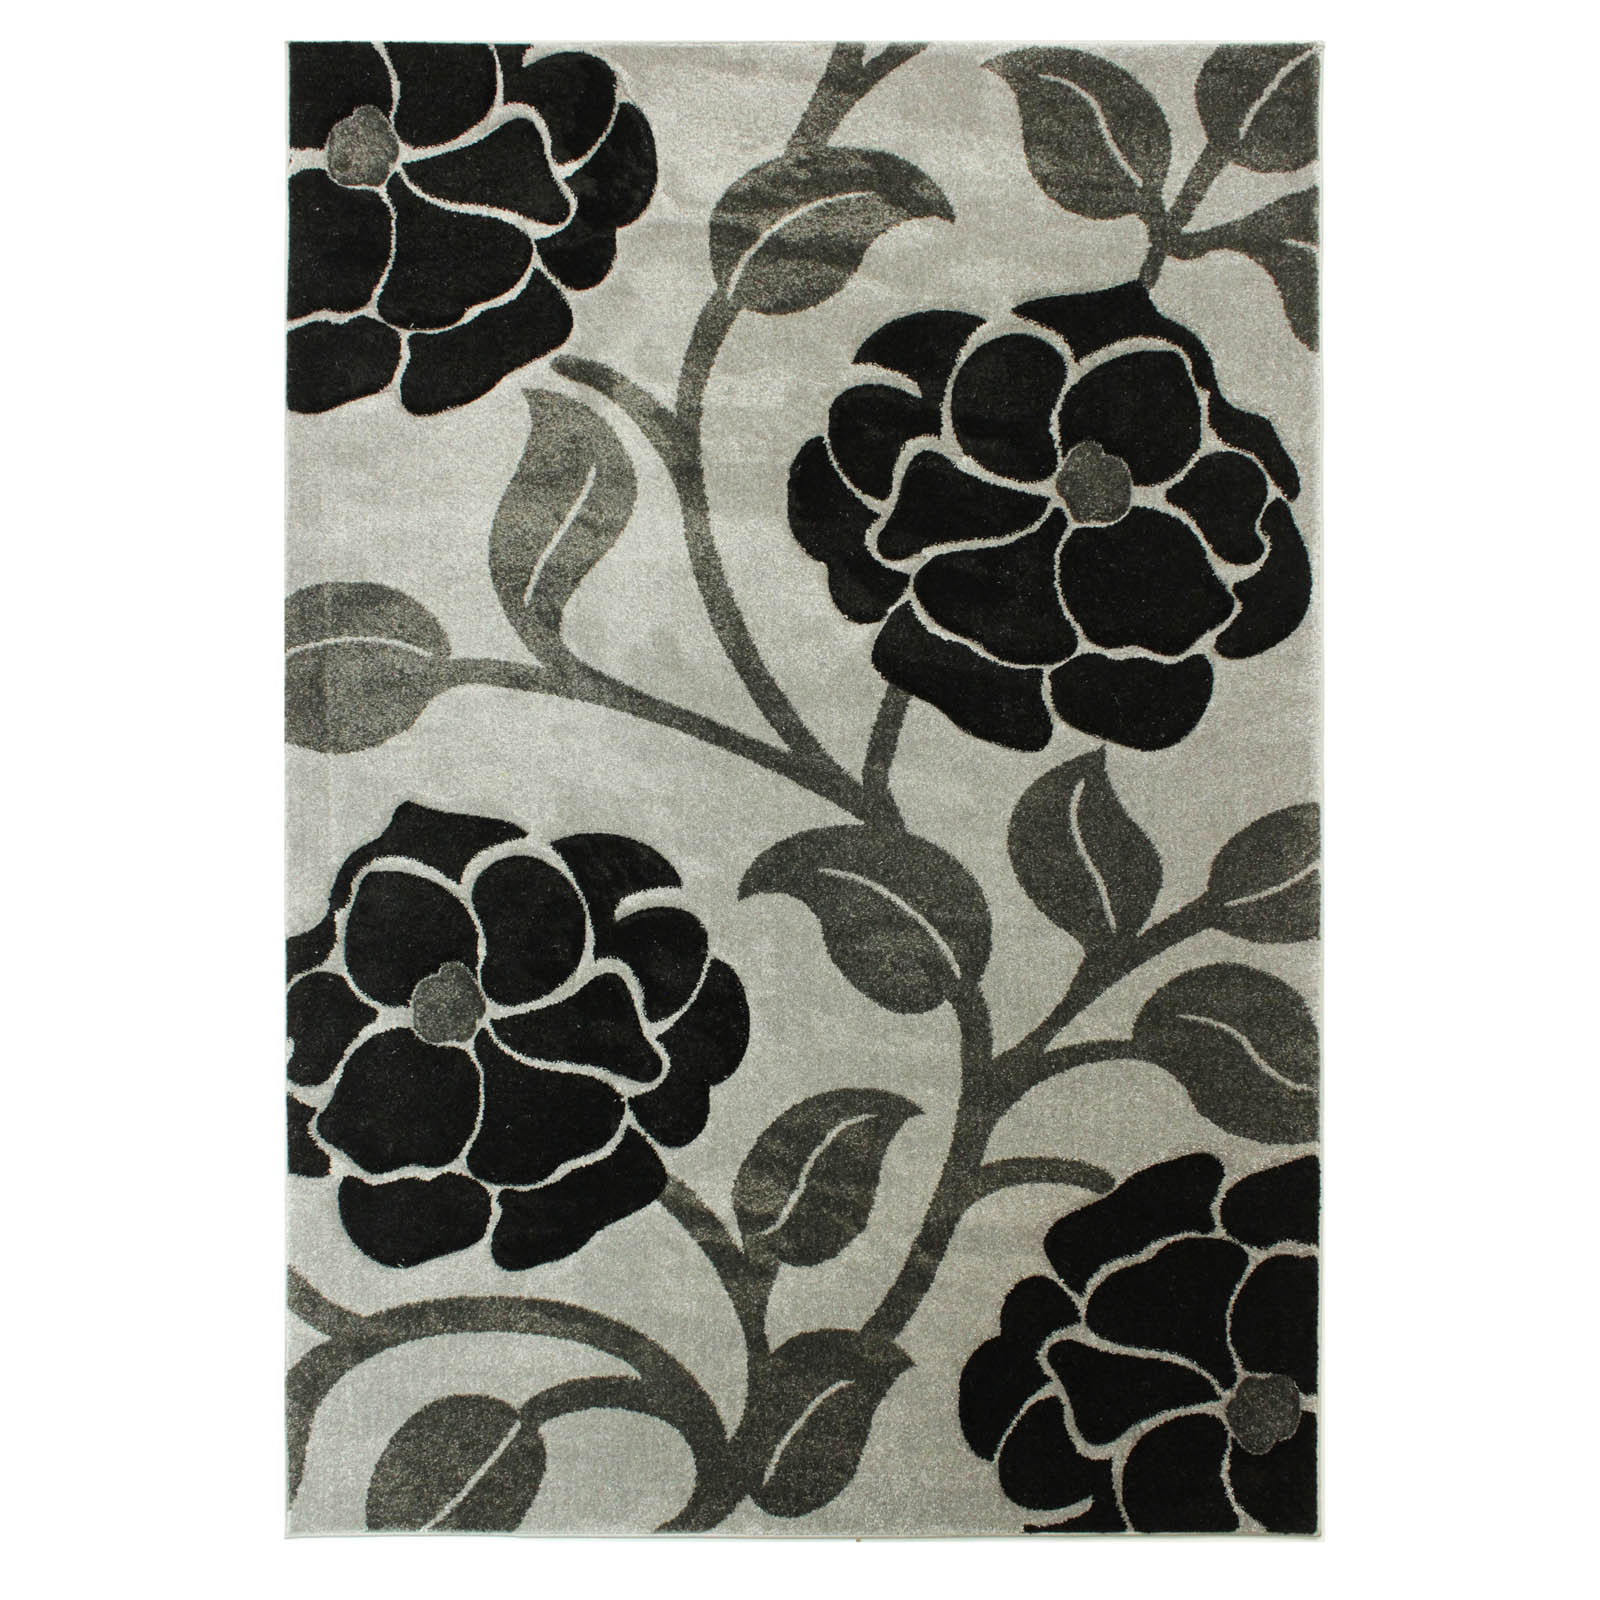 Hand Carved Vine Rugs in Grey and Black